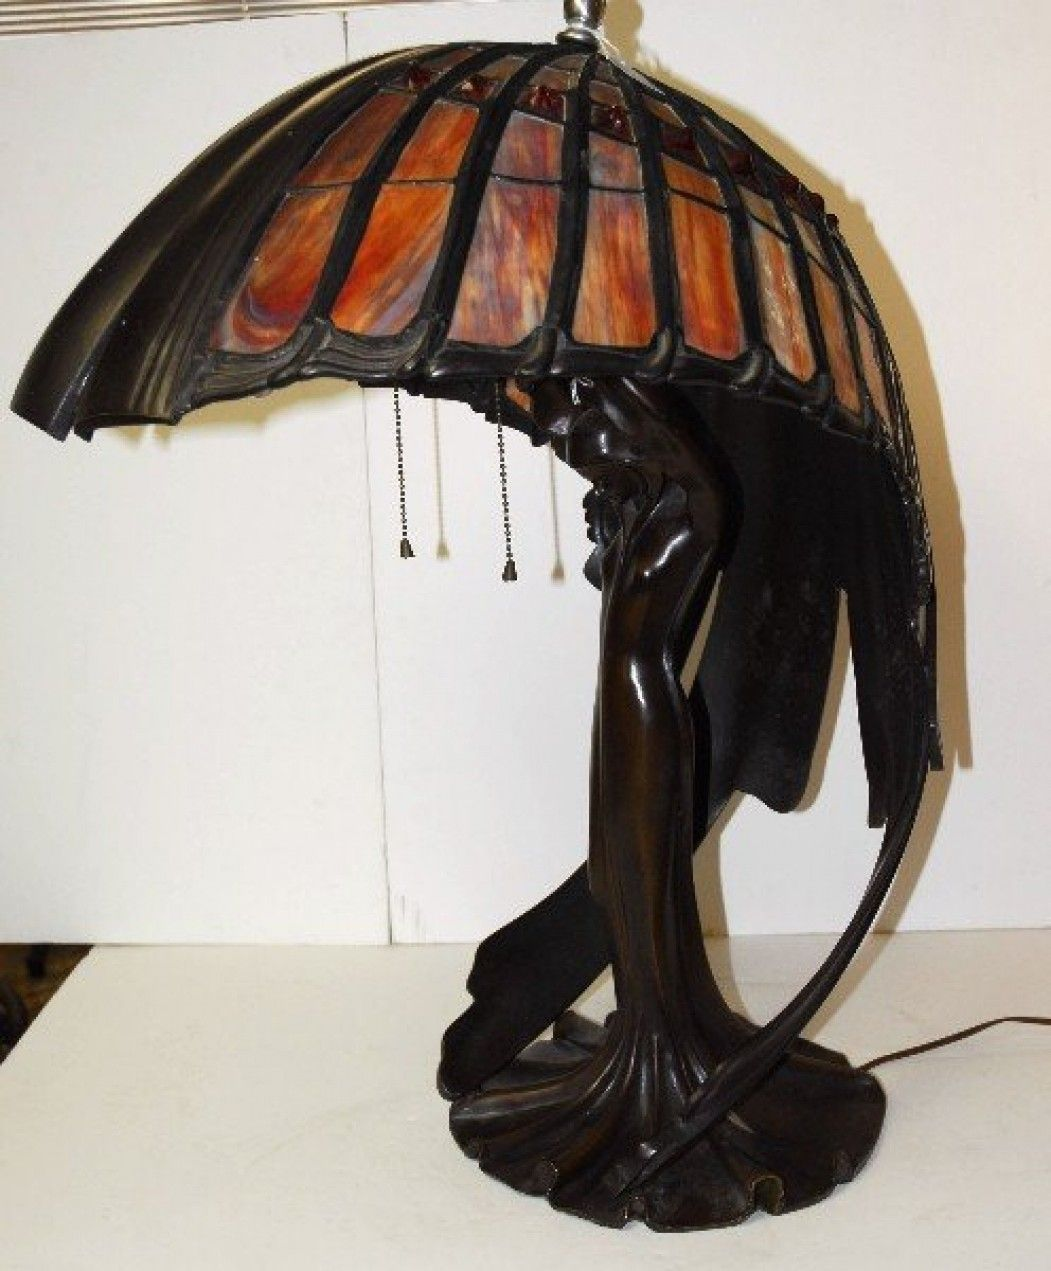 tiffany valley figural bronze and art glass table lamp lot 221br tiffany valley lampu astonishing tiffany - Tiffany Table Lamps